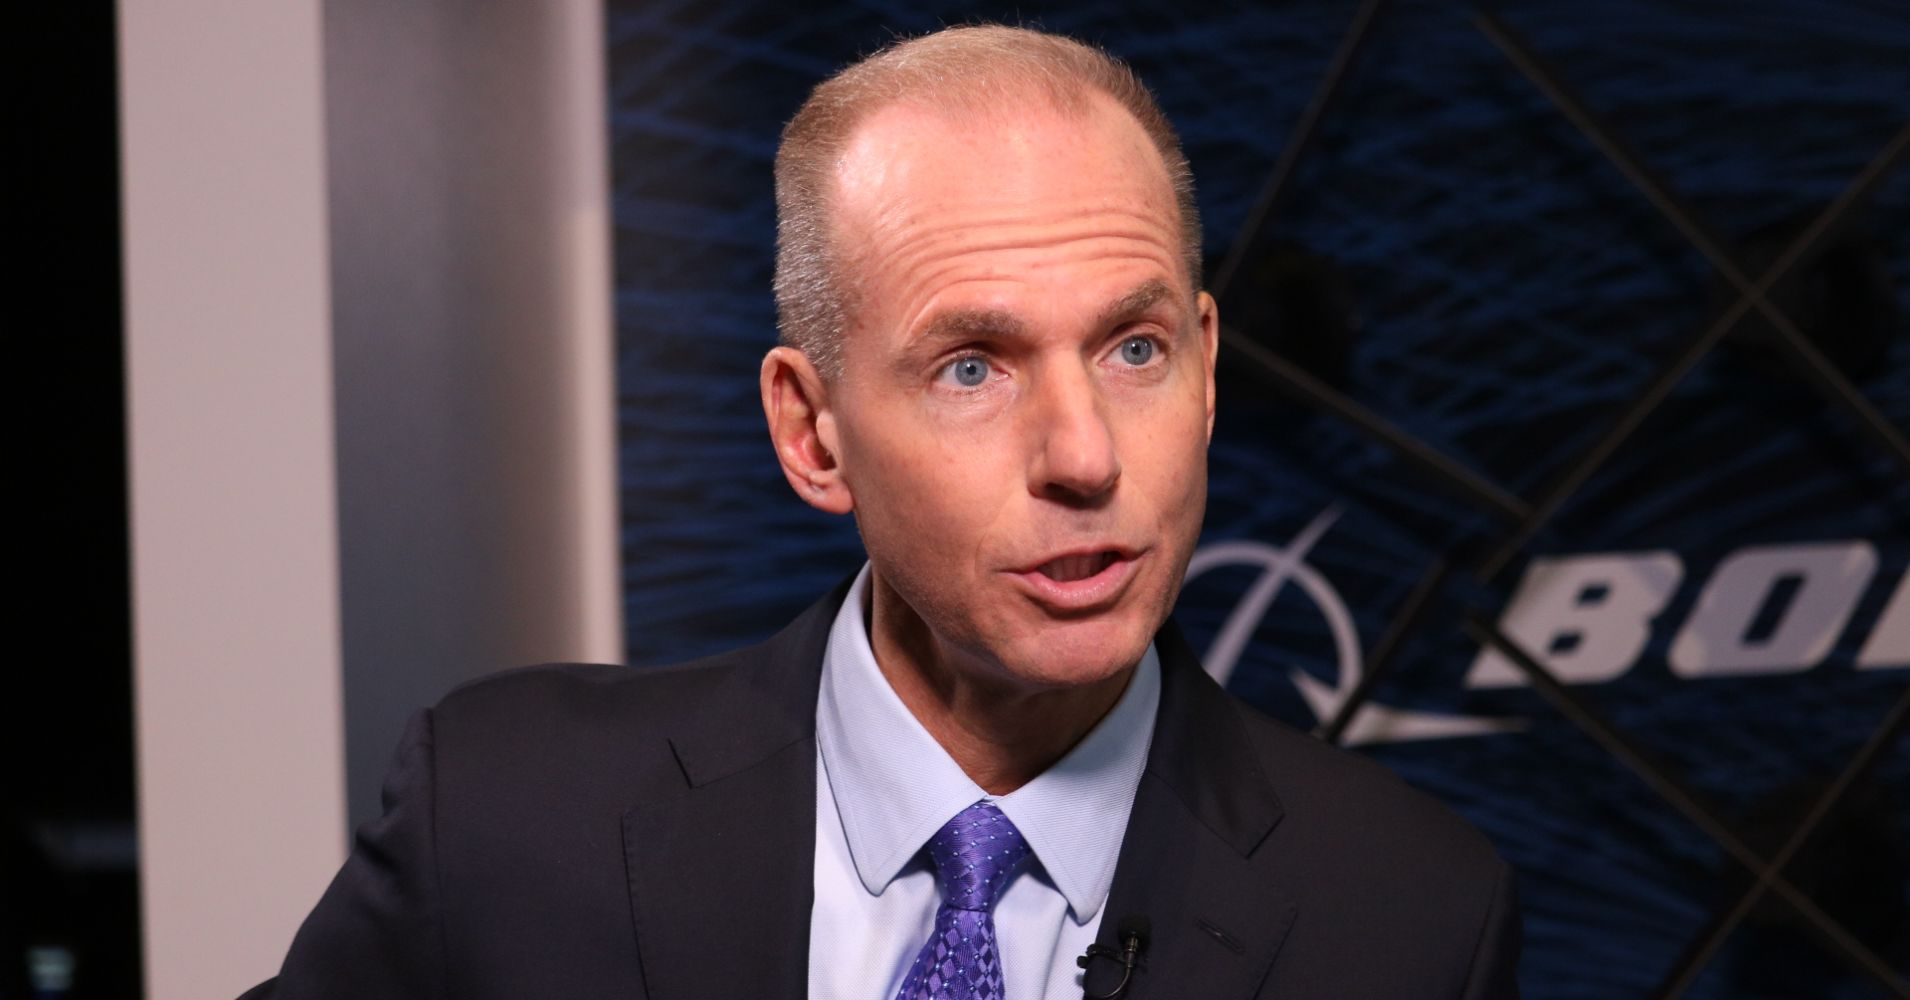 dennis muilenburg, ceo boeing corporation, act consulting, cst 100 starliner